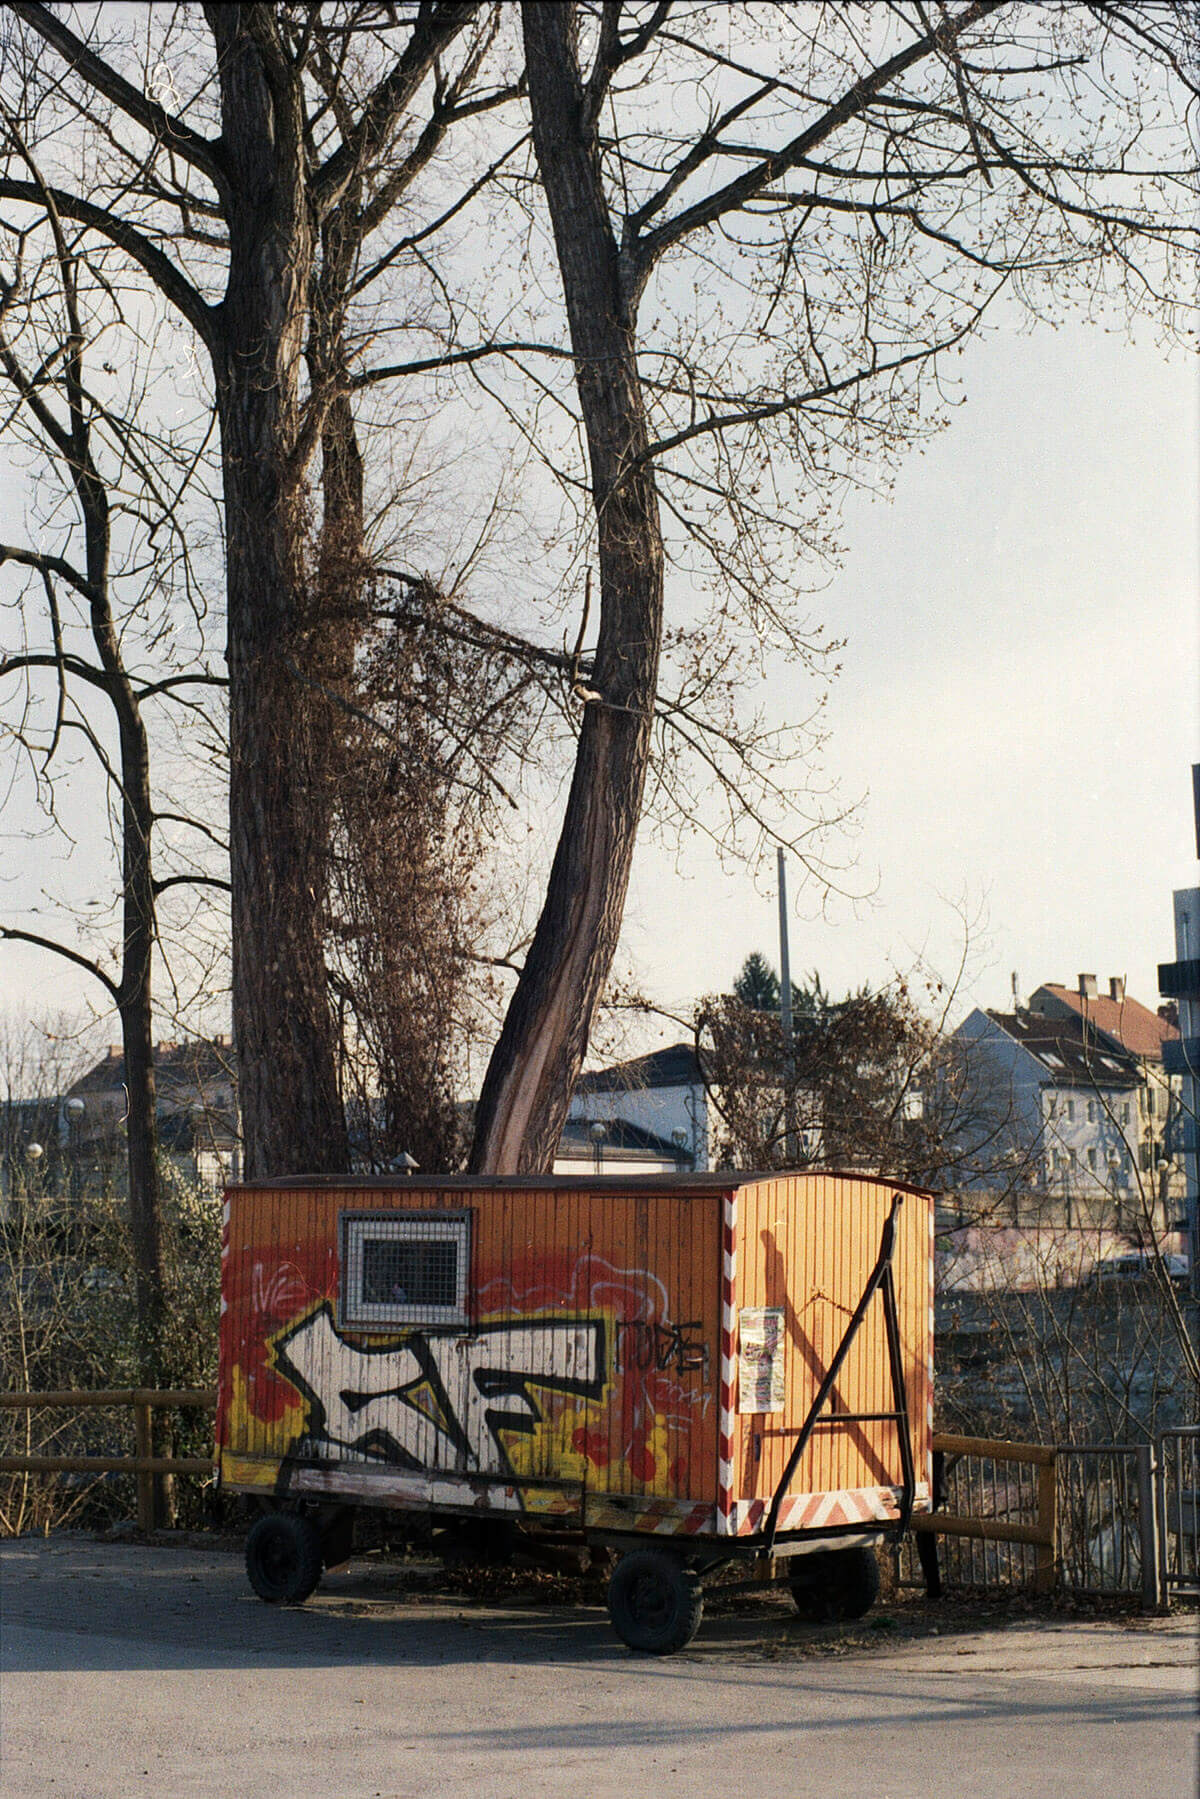 Graz on lockdown with snapped film- Kodak ColorPlus 200 and Olympus OM-1 with Zuiko 55mm f/1.2